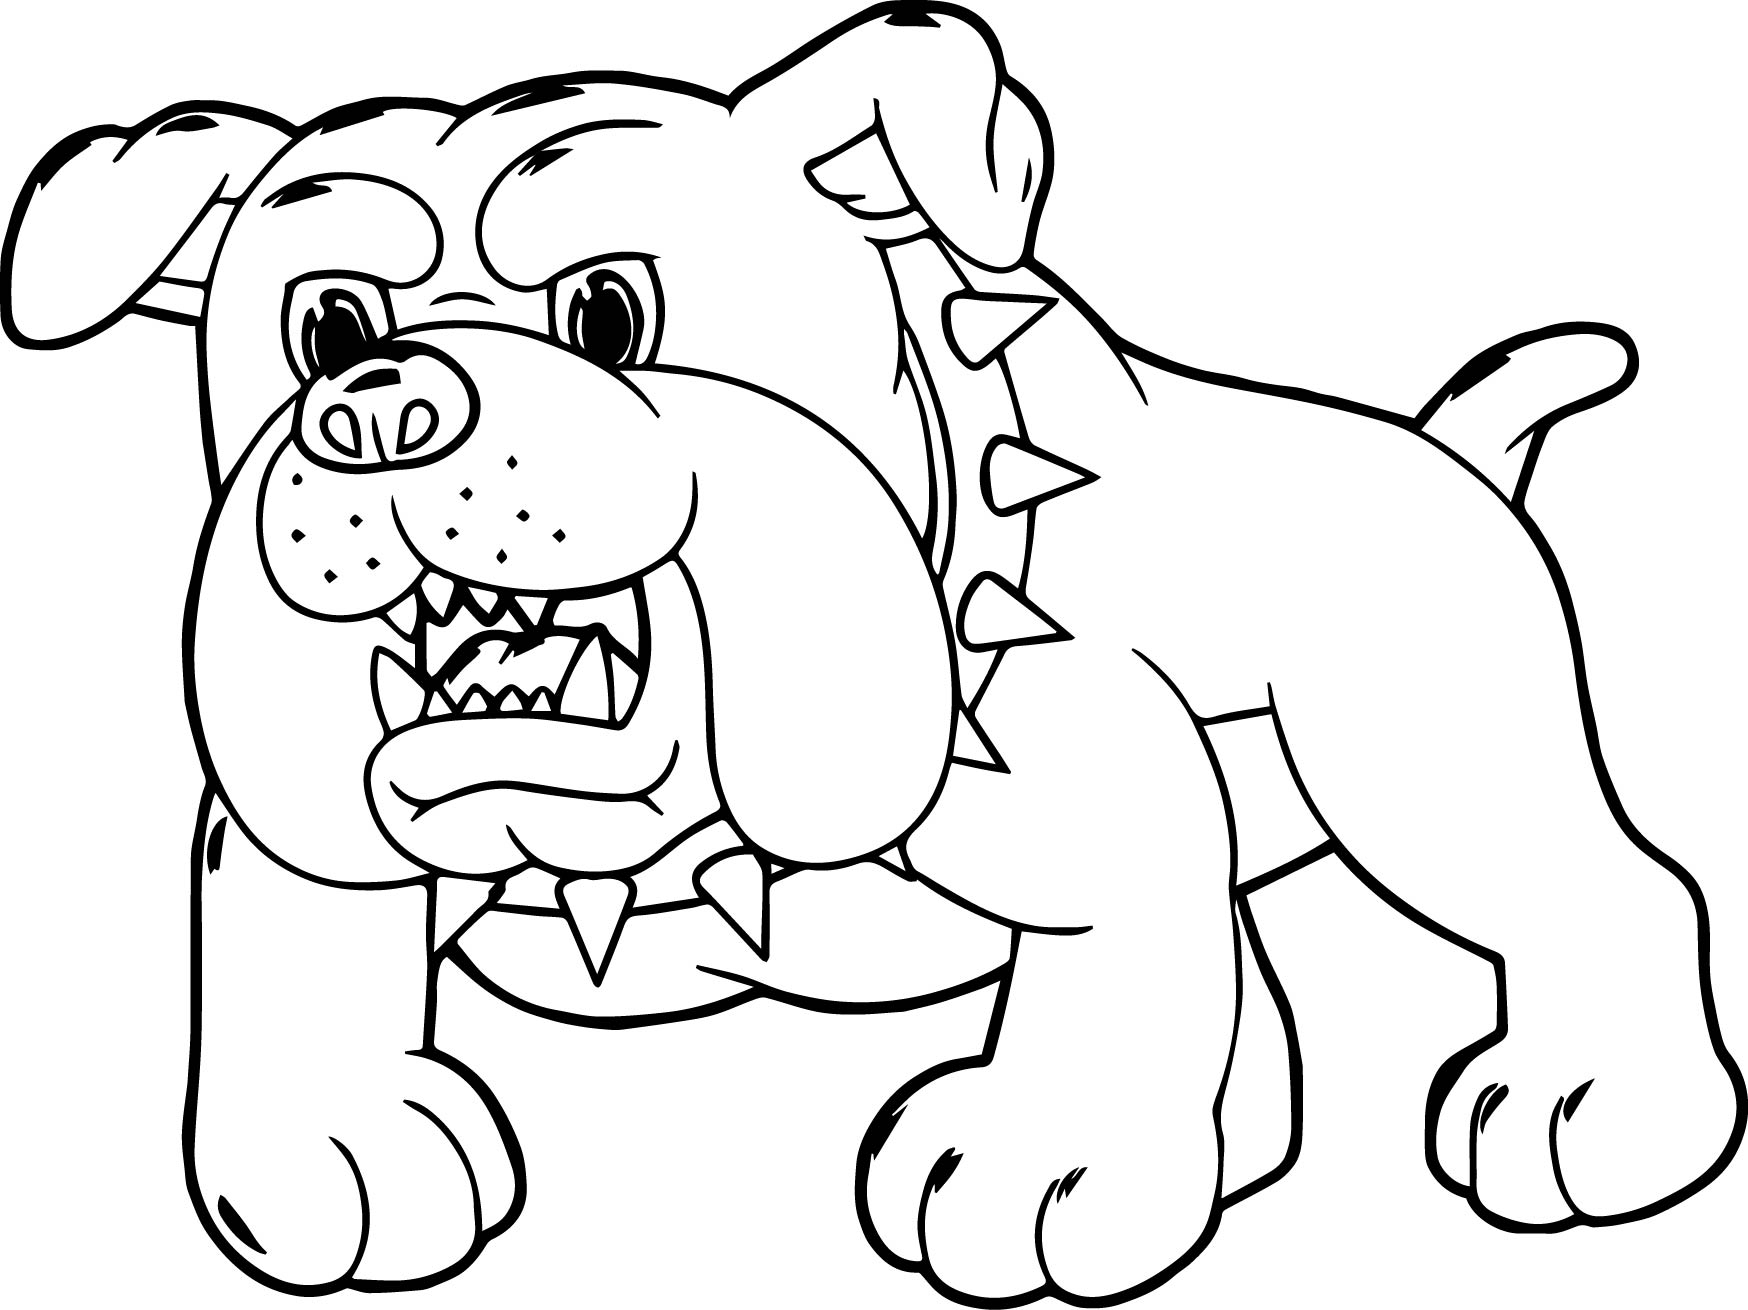 cartoons coloring pictures little girl coloring pages getcoloringpagescom coloring pictures cartoons